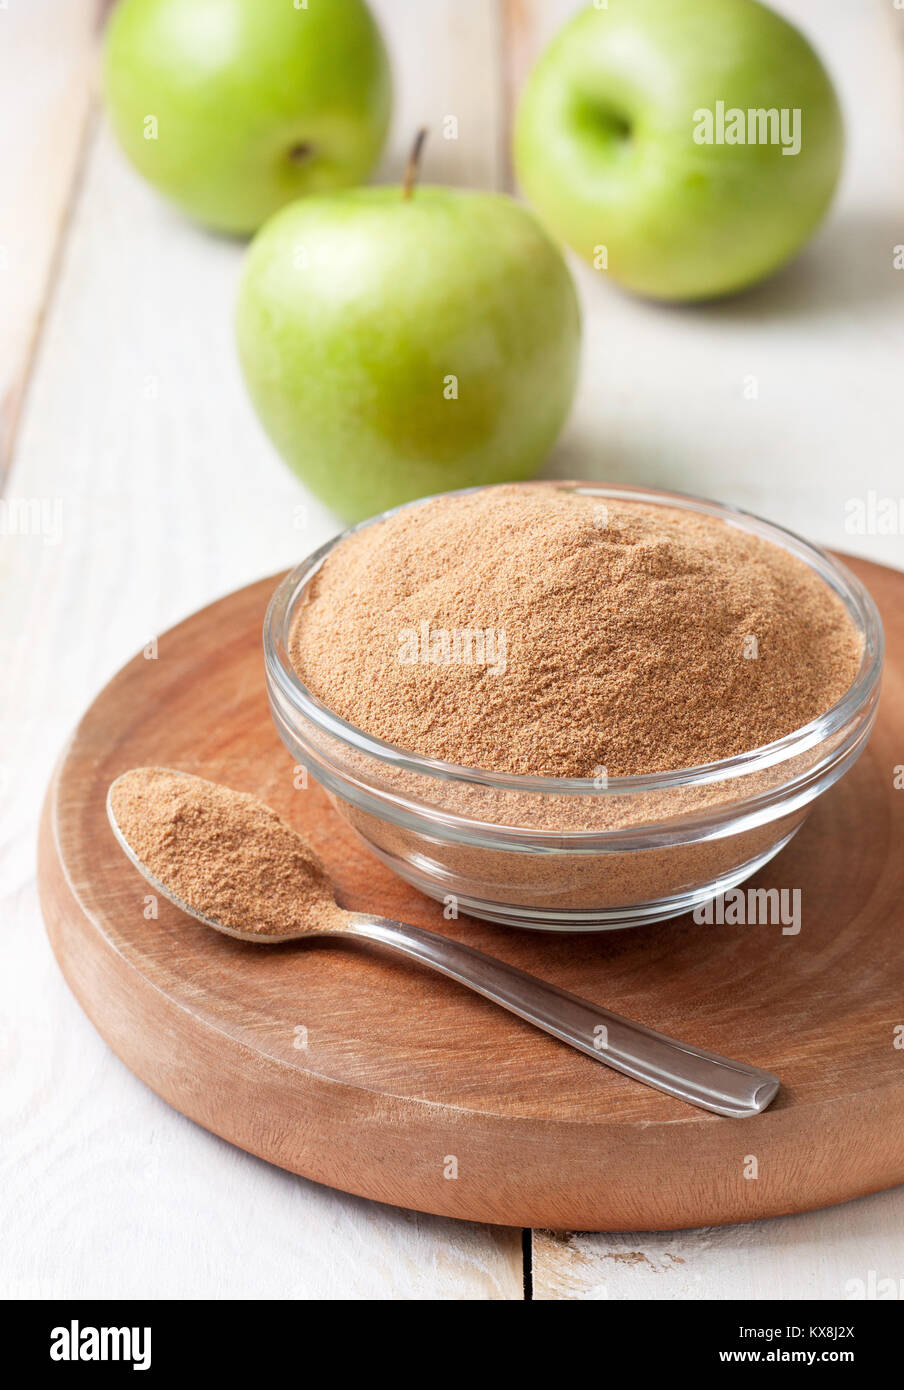 crushed apple fiber, green apple on a light  background. dietary product - Stock Image